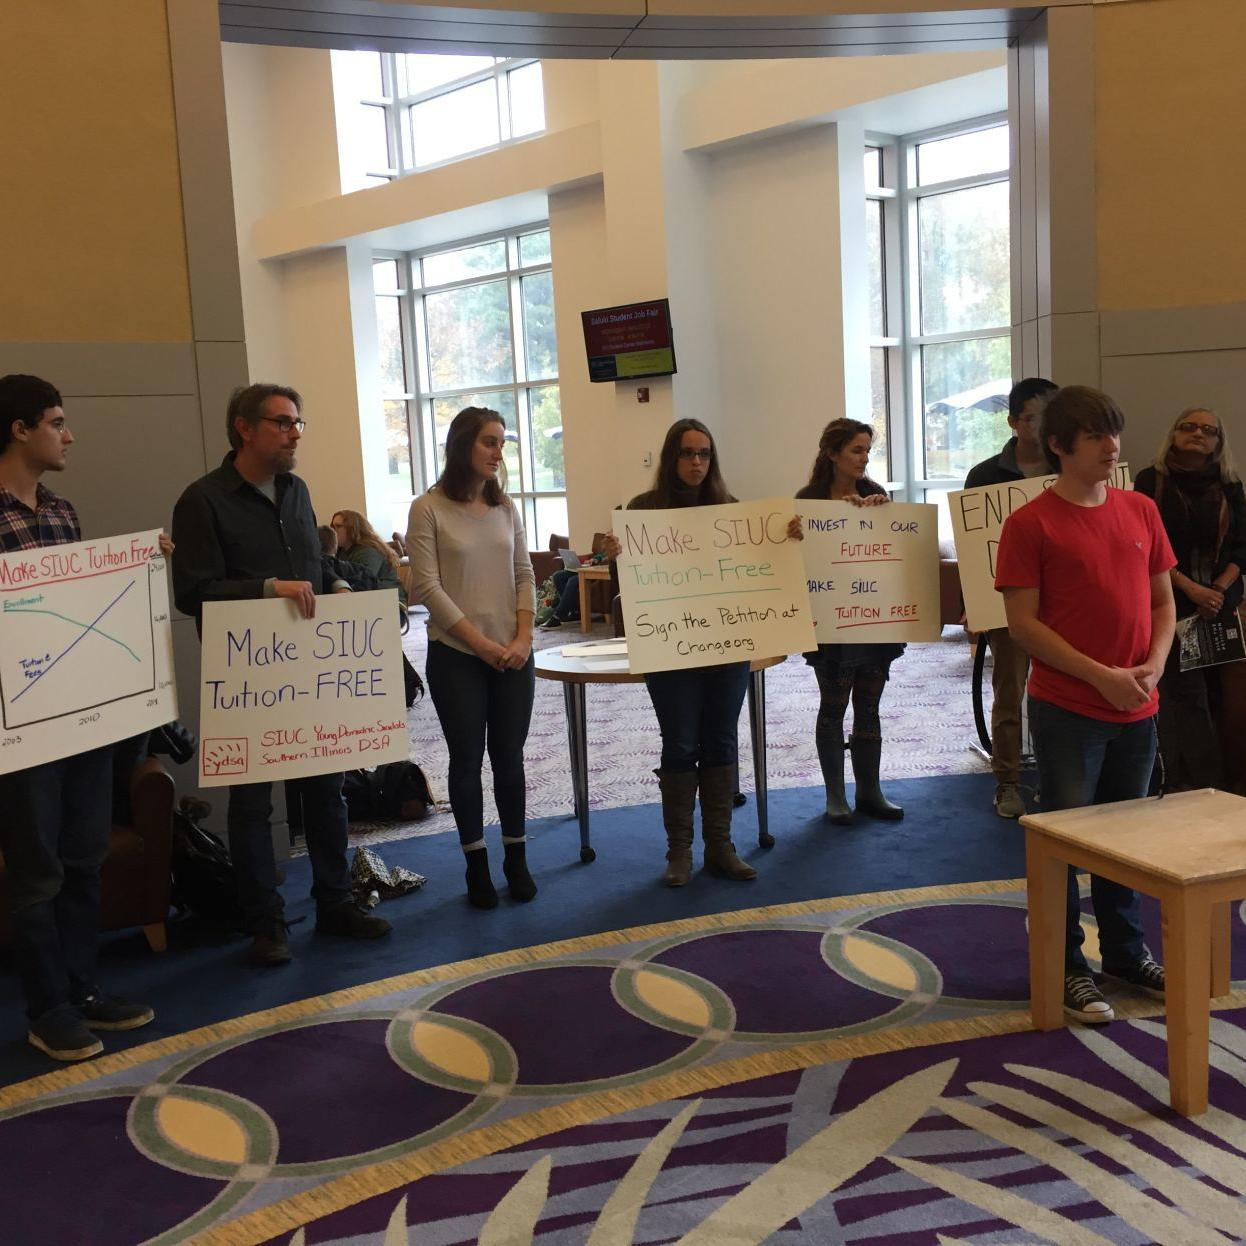 Activists call for tuition-free SIUC as enrollment, cost of